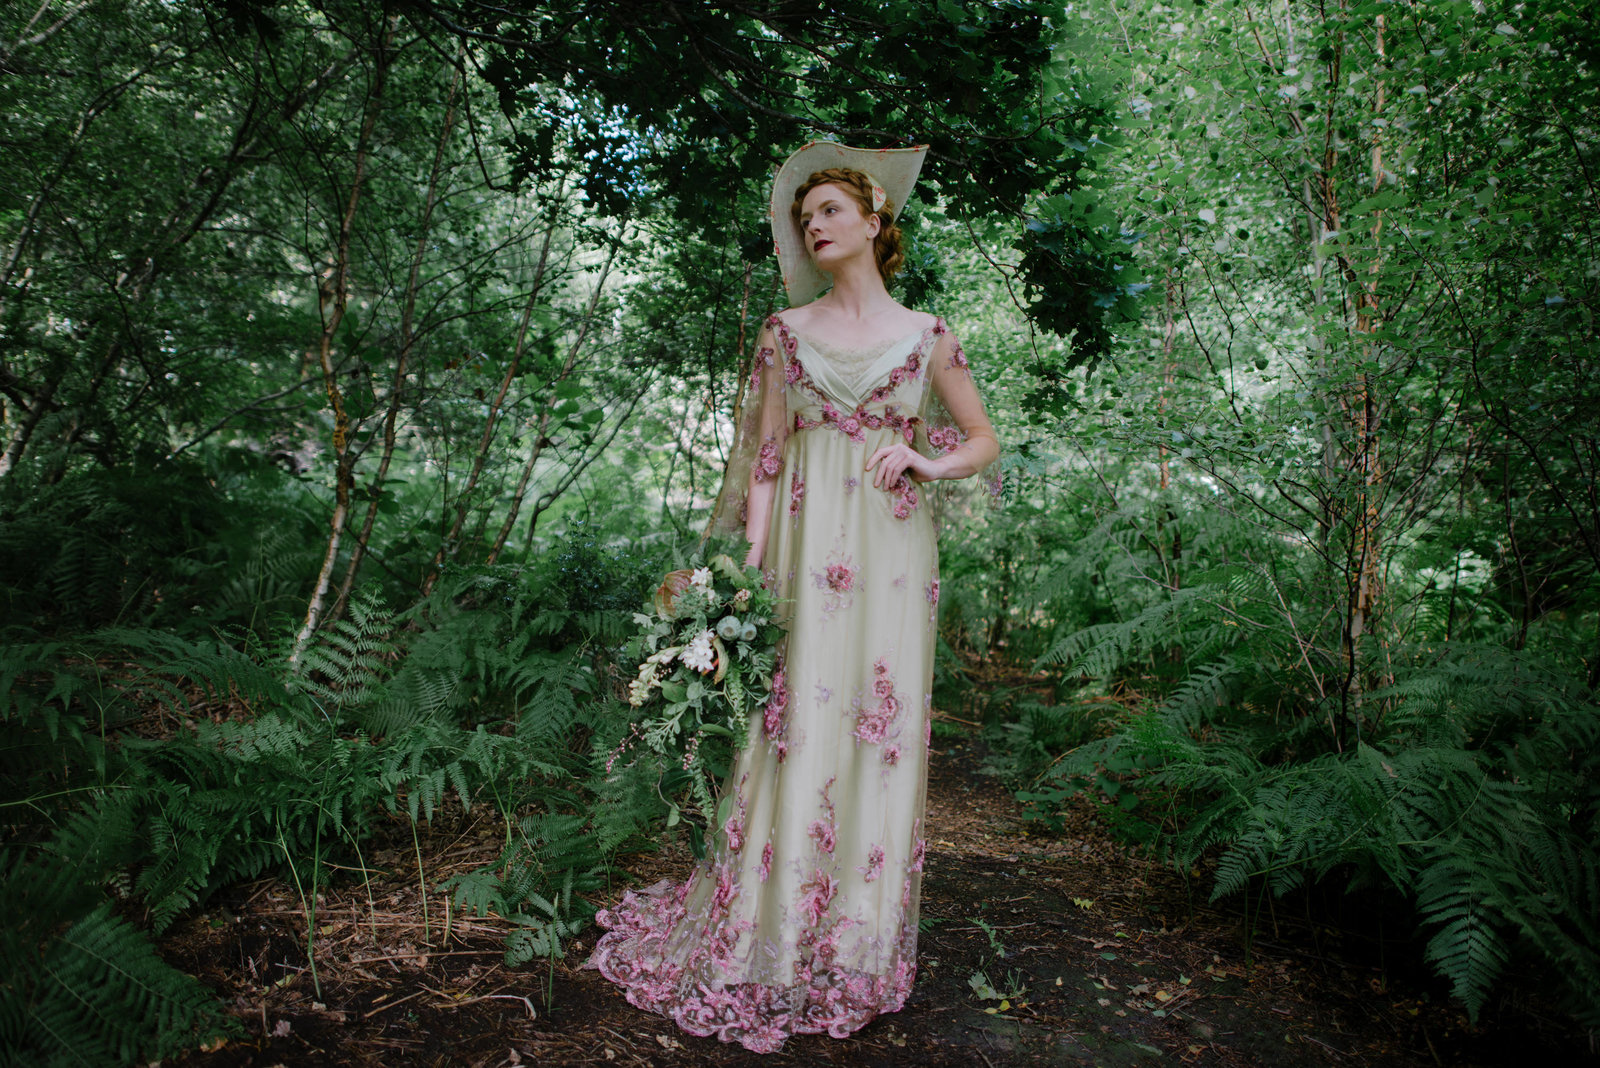 Gainsborough_belle_epoque_green_lilac_wedding_dress_JoanneFlemingDesign_JMS (6)web